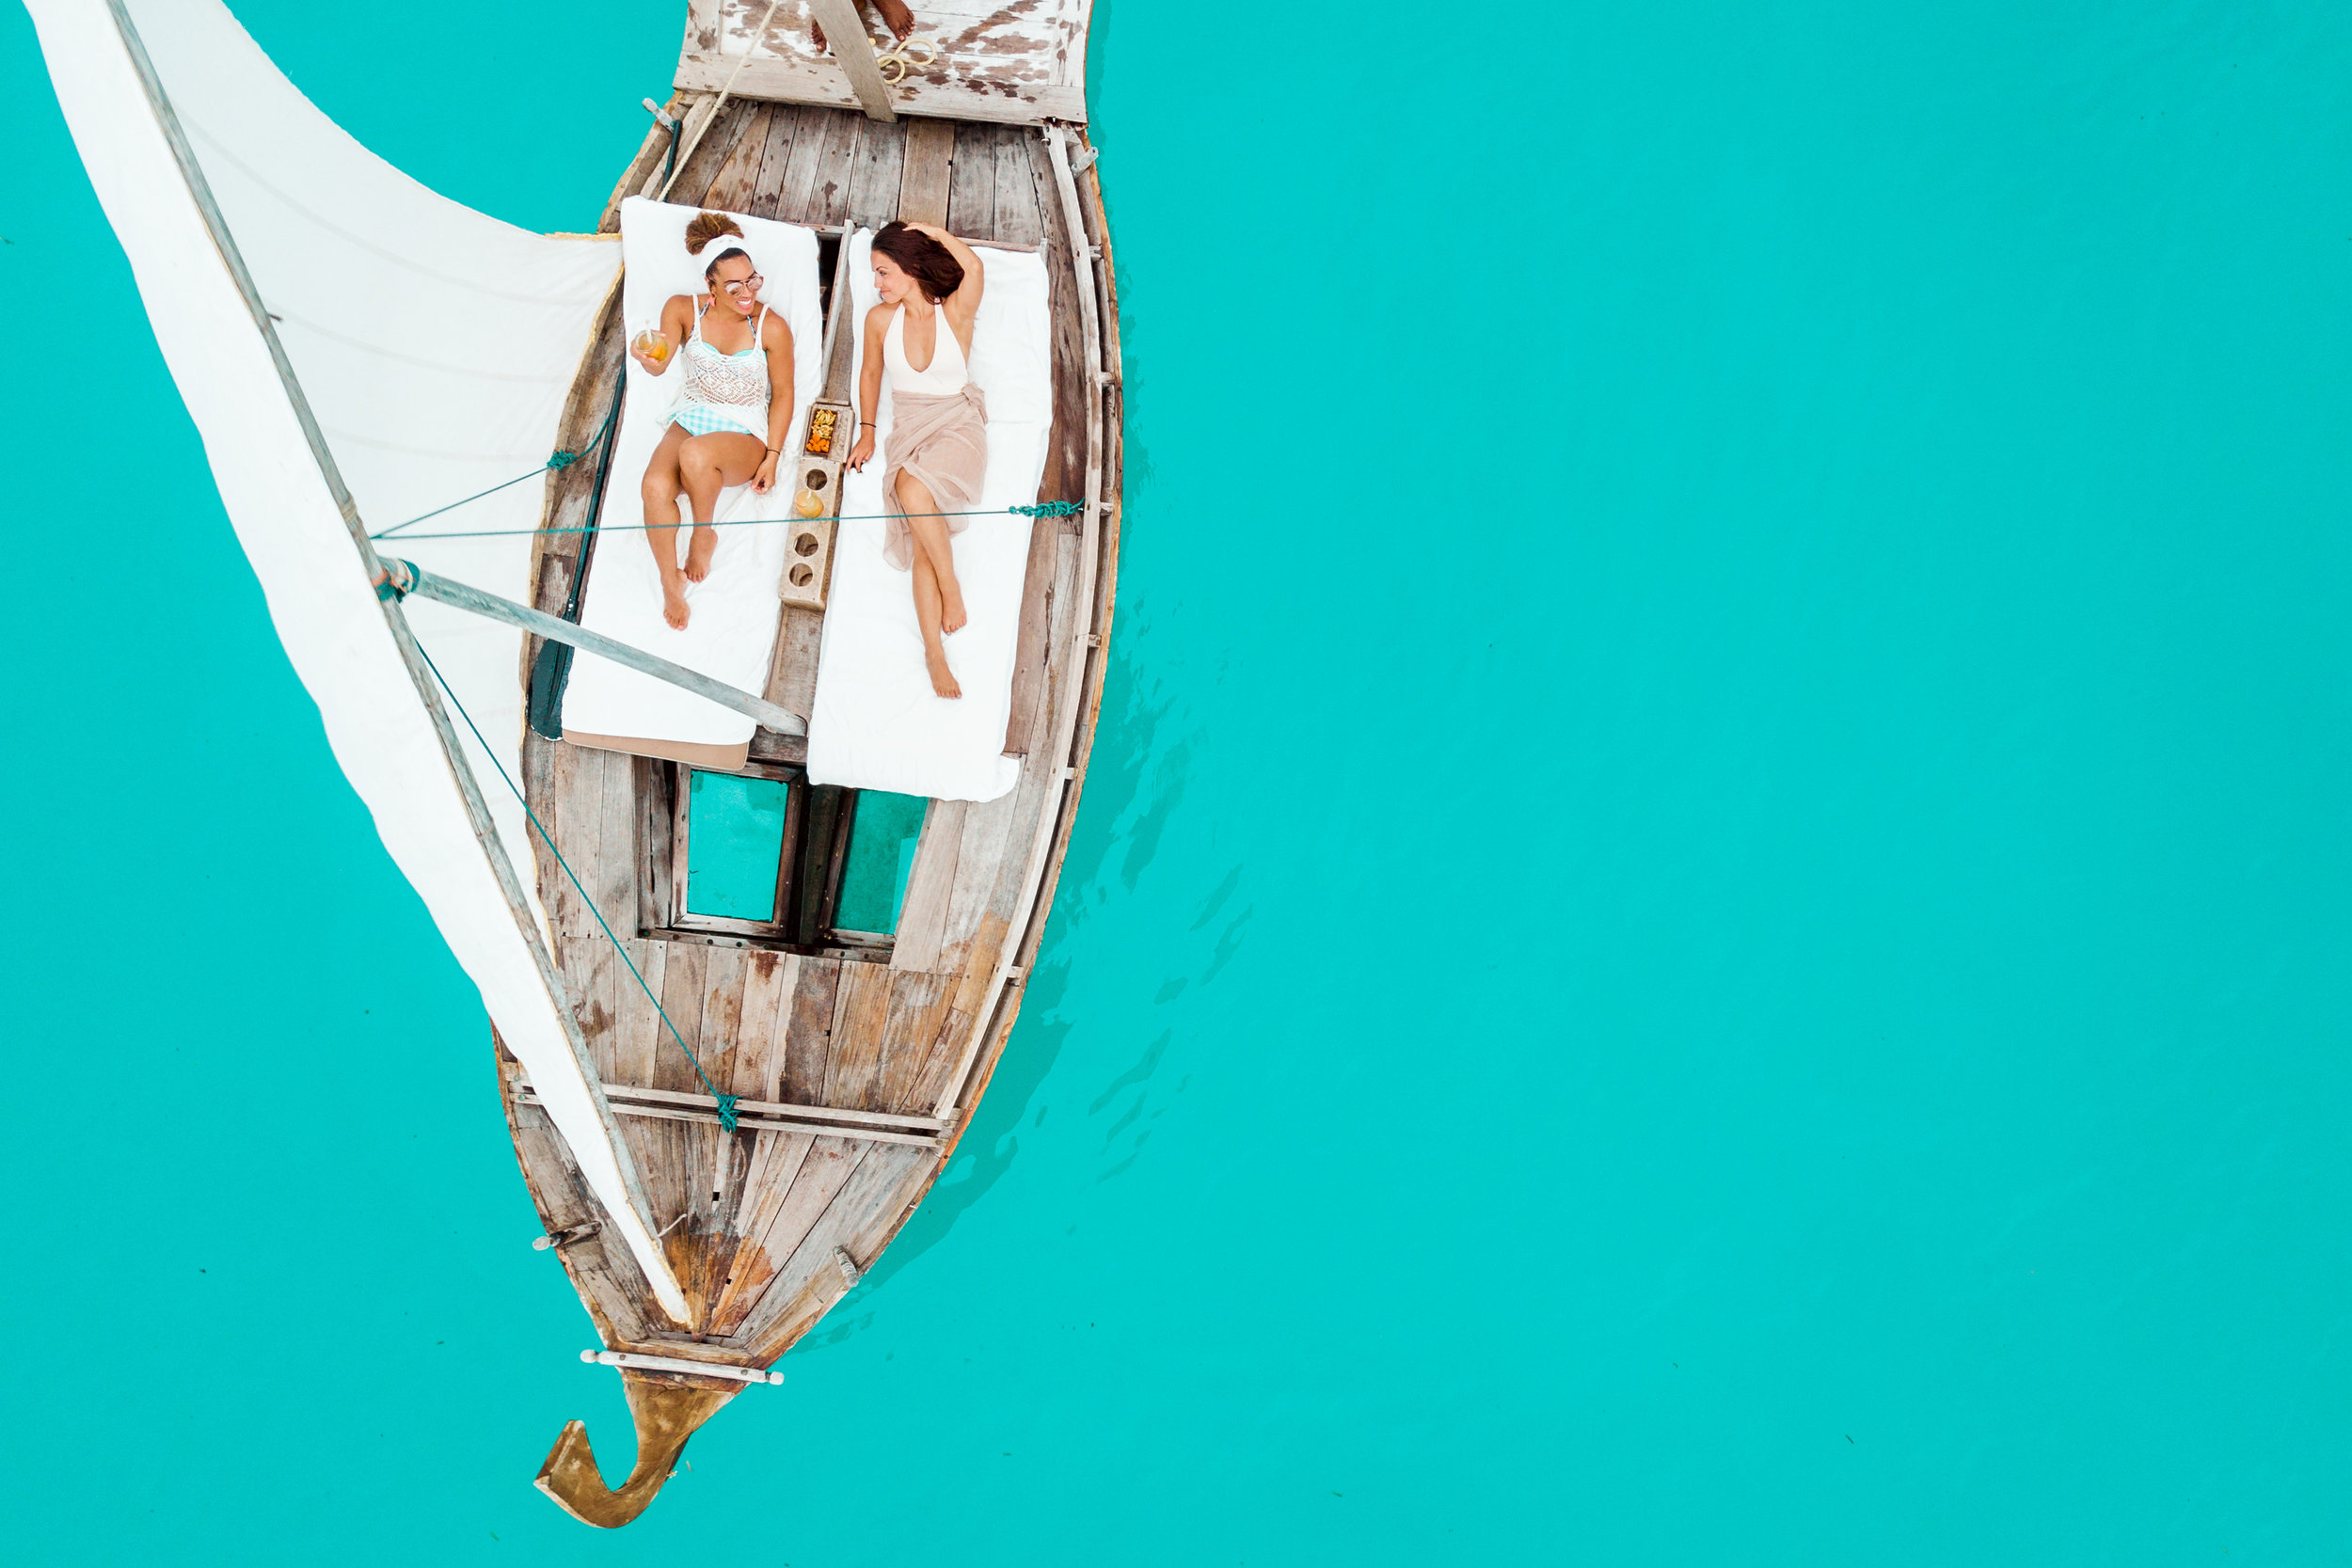 Gina Sheena Maldives Boat for slideshow carousel.jpg